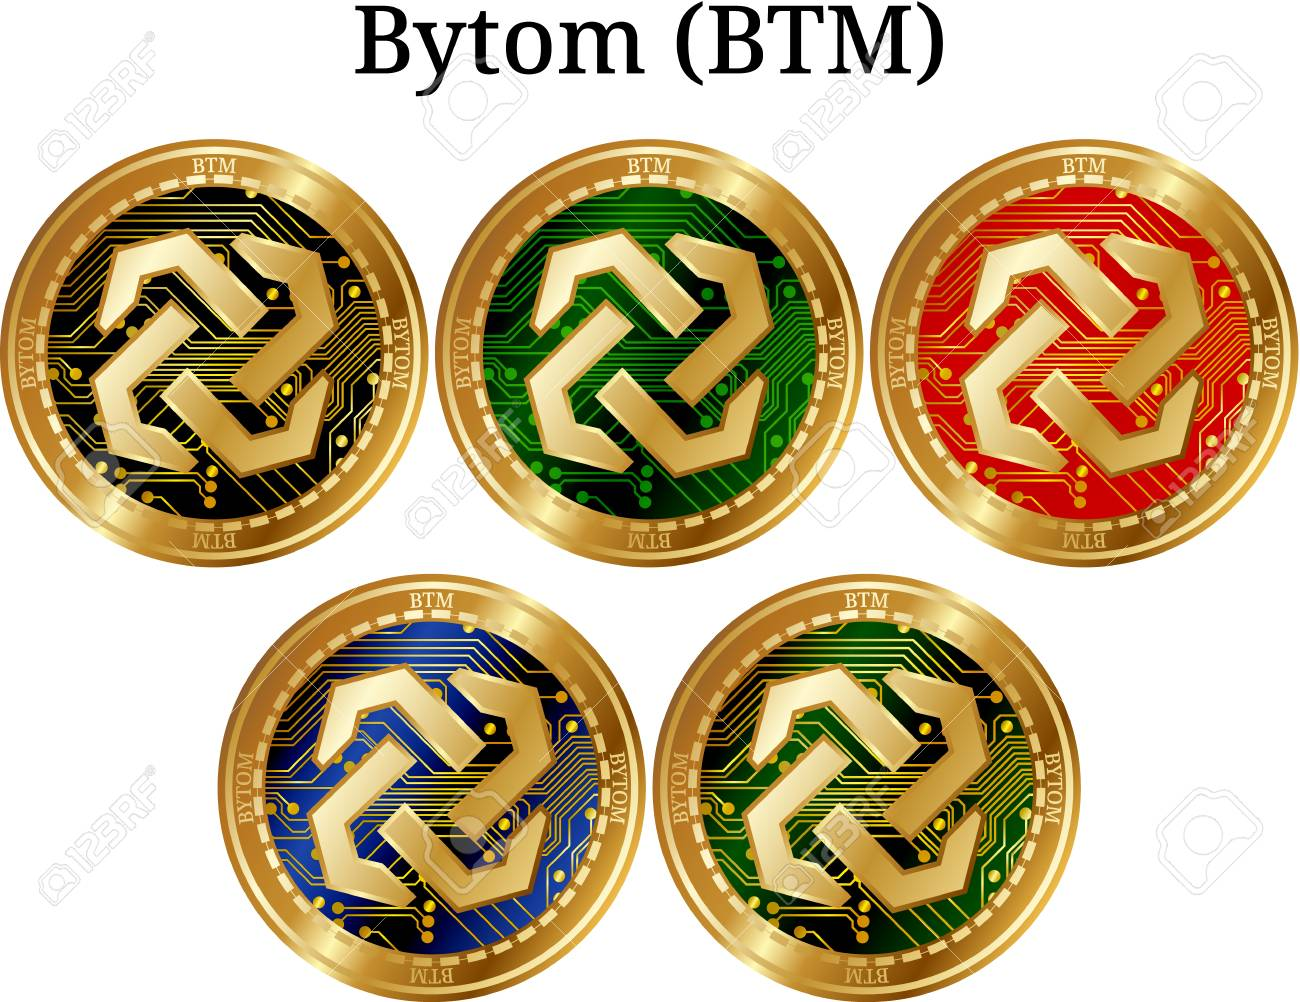 bytom cryptocurrency mining